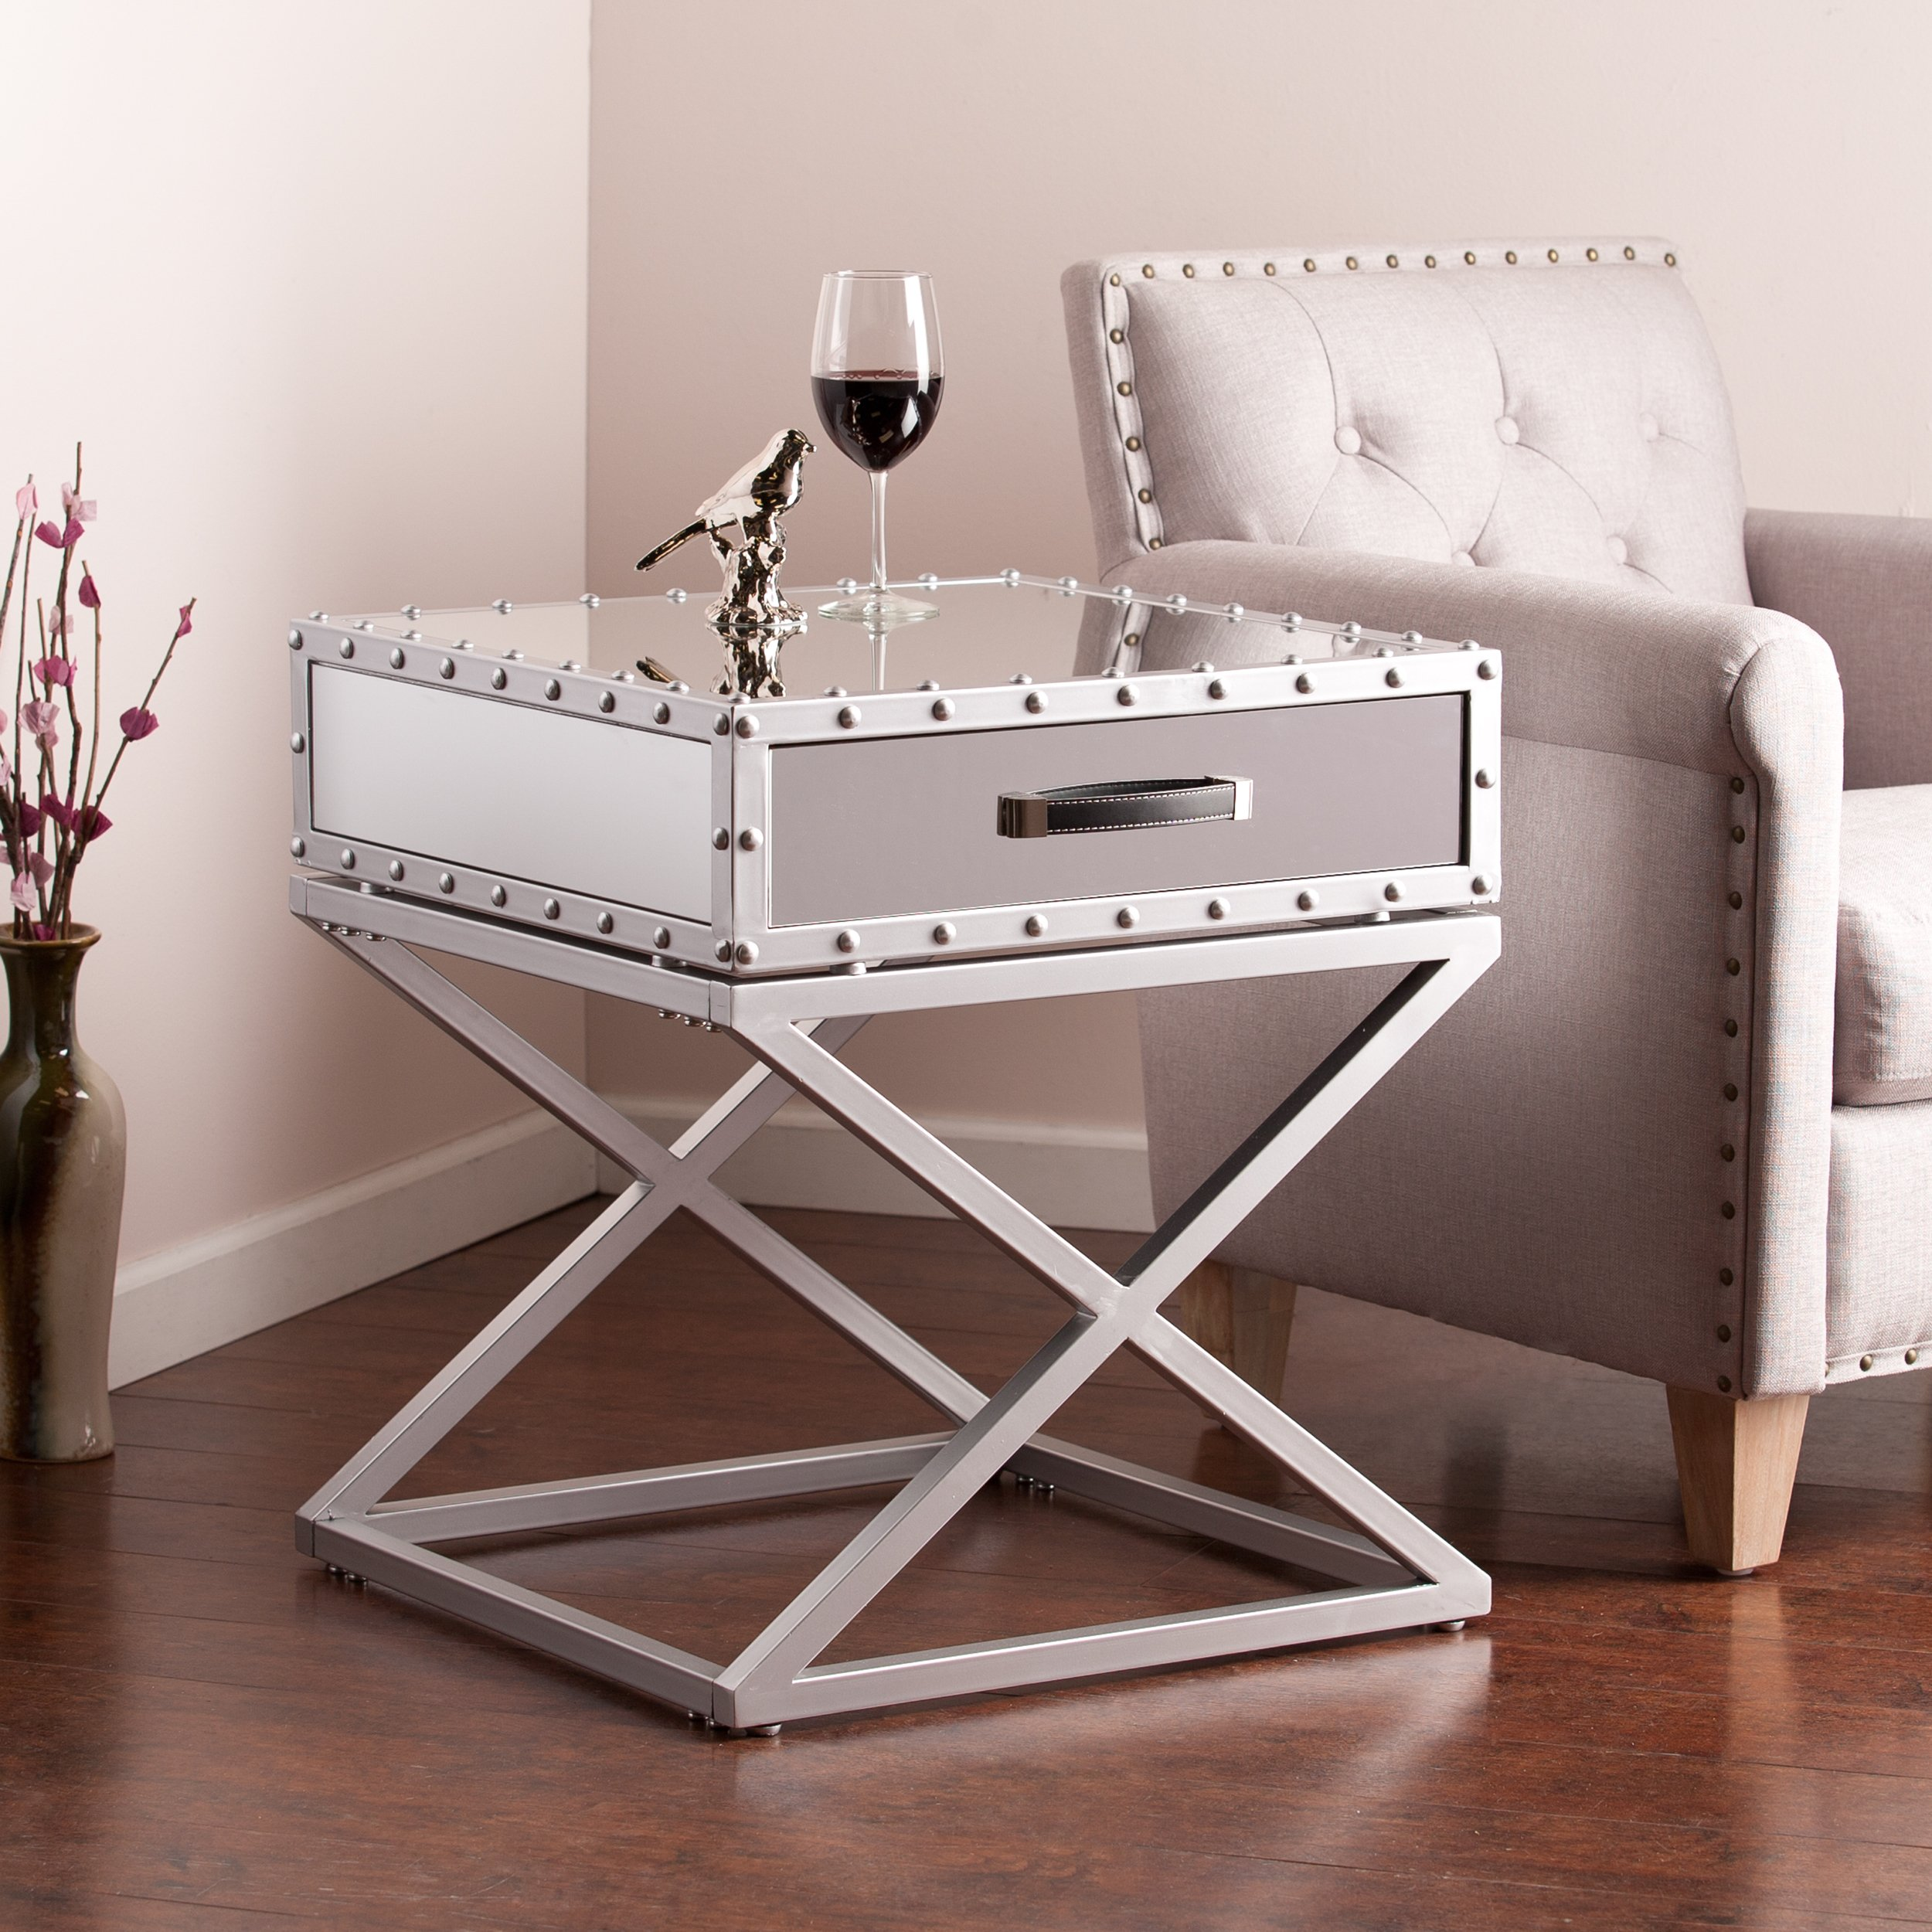 upton home carollton industrial mirrored side end table harper blvd glam accent metal virgil free shipping today patio storage chest bobs furniture tall narrow oak desk trestle